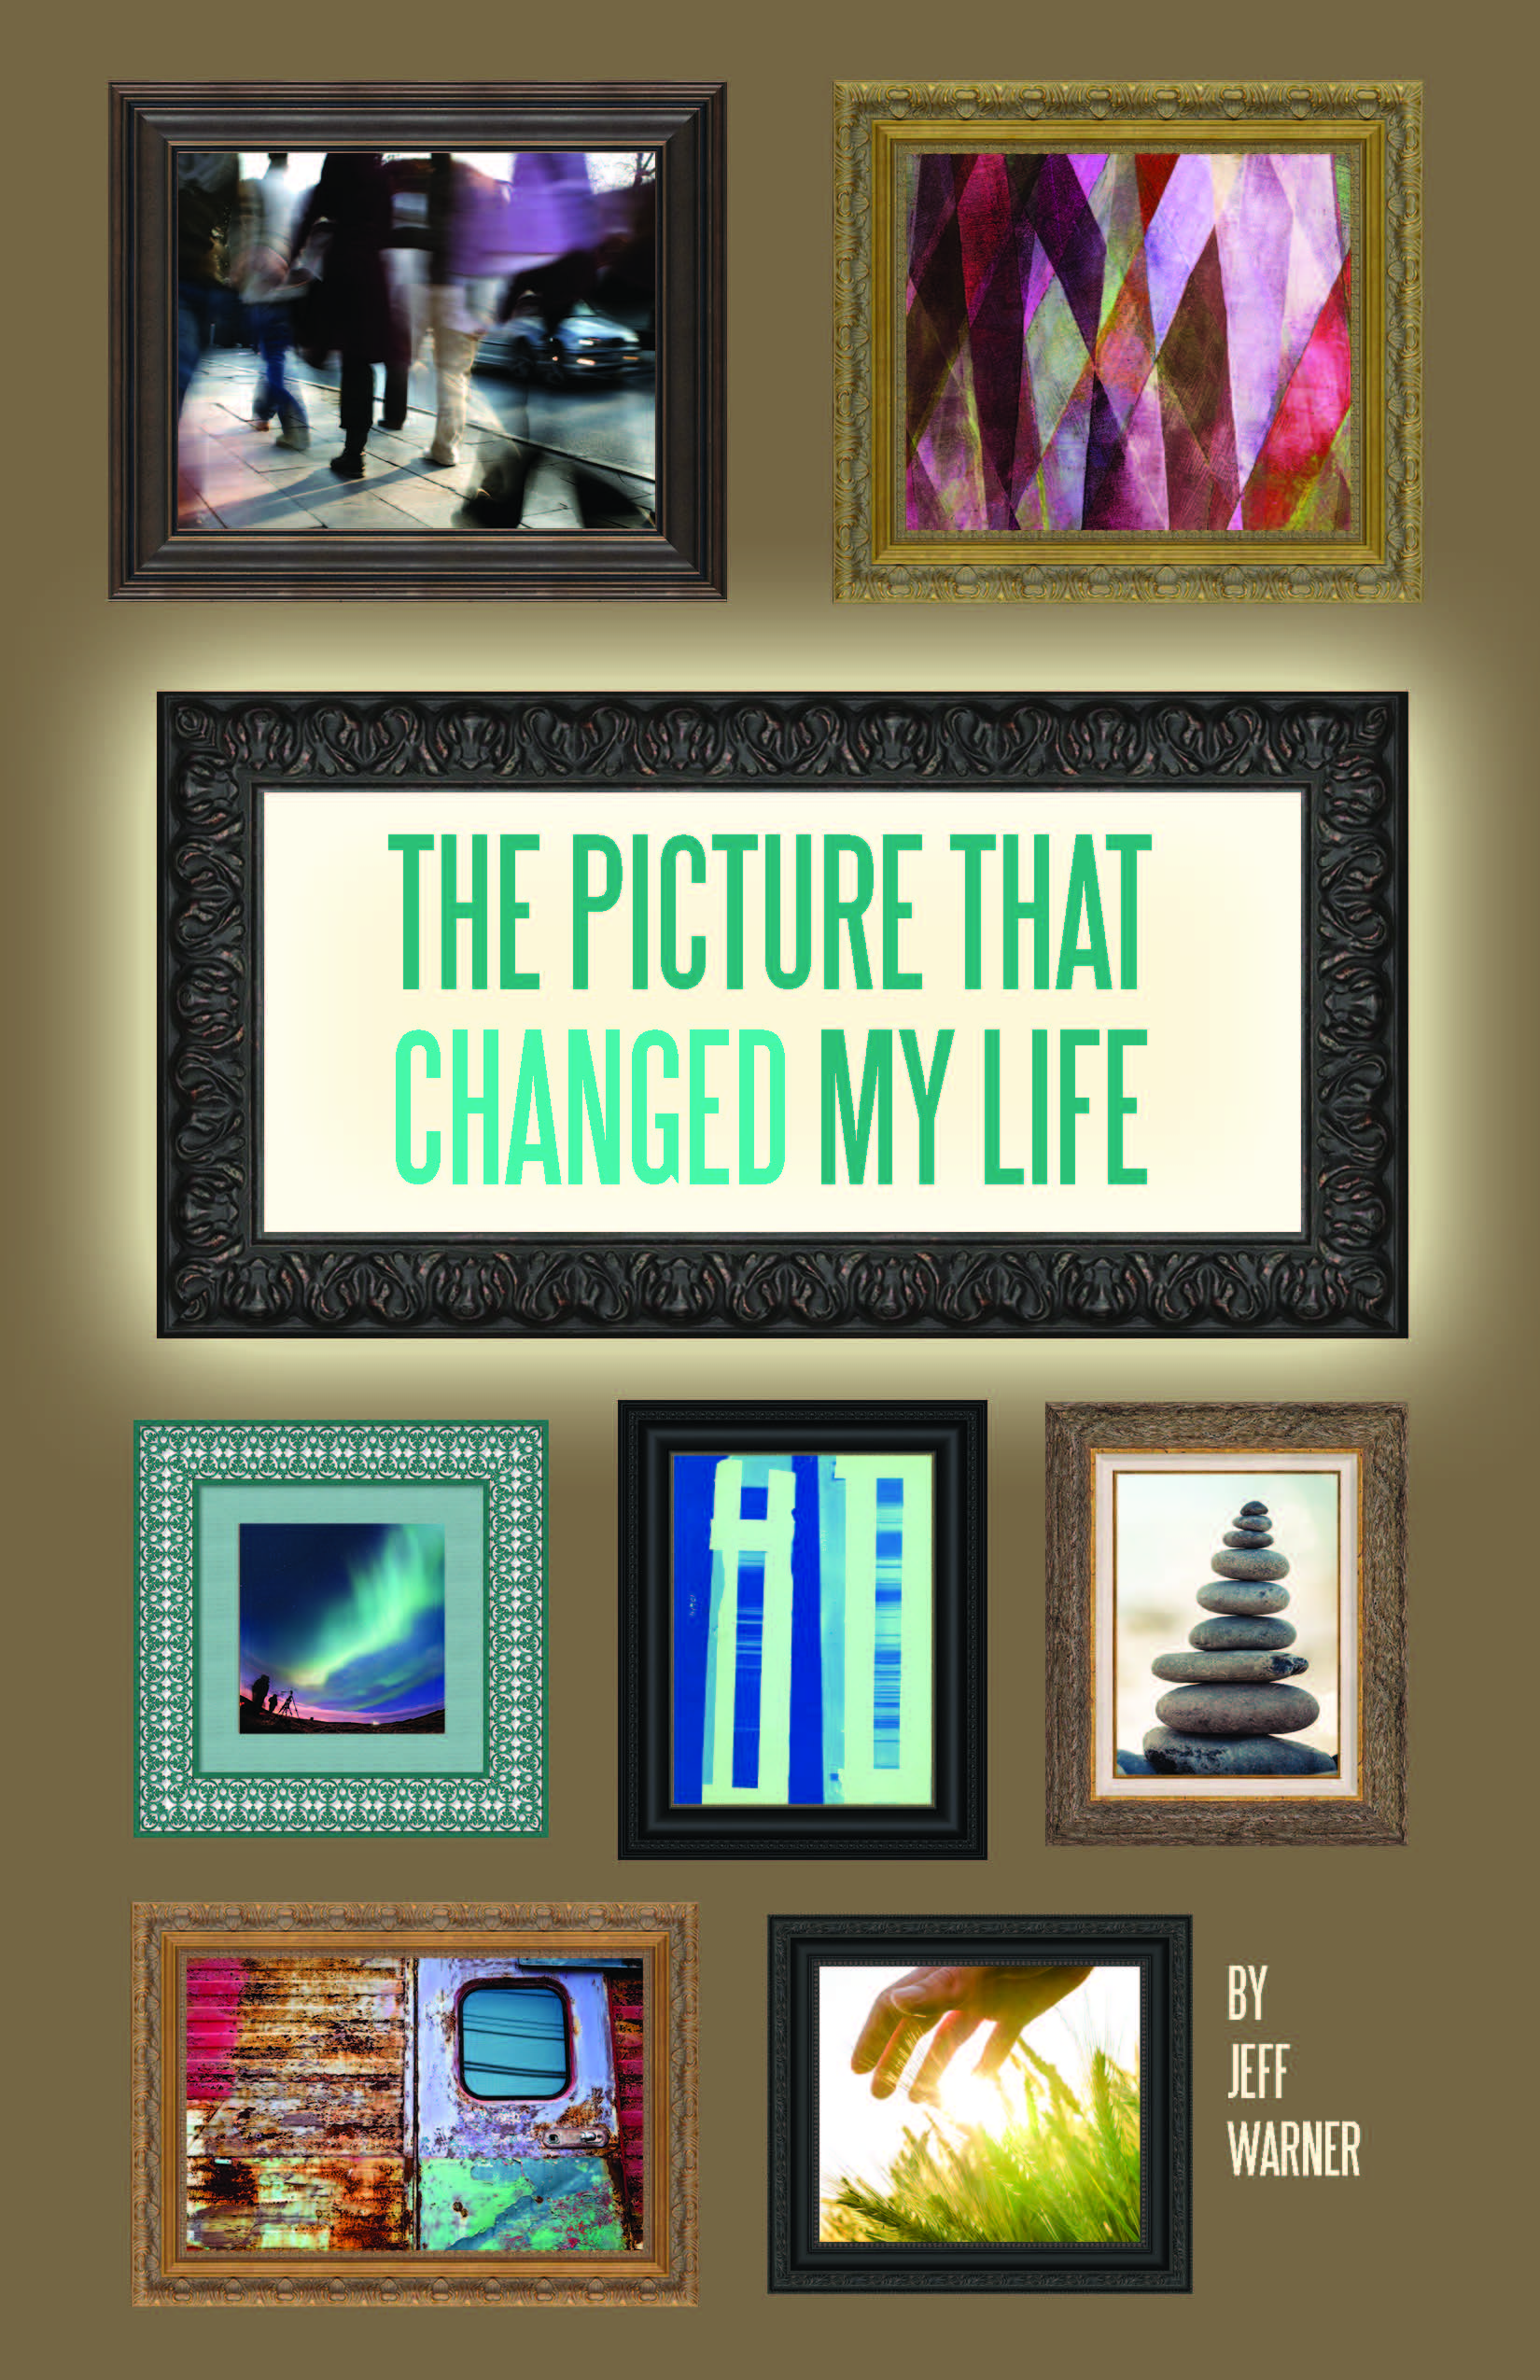 PictureThatChangedMyLife Cover-6Aug14.jpg